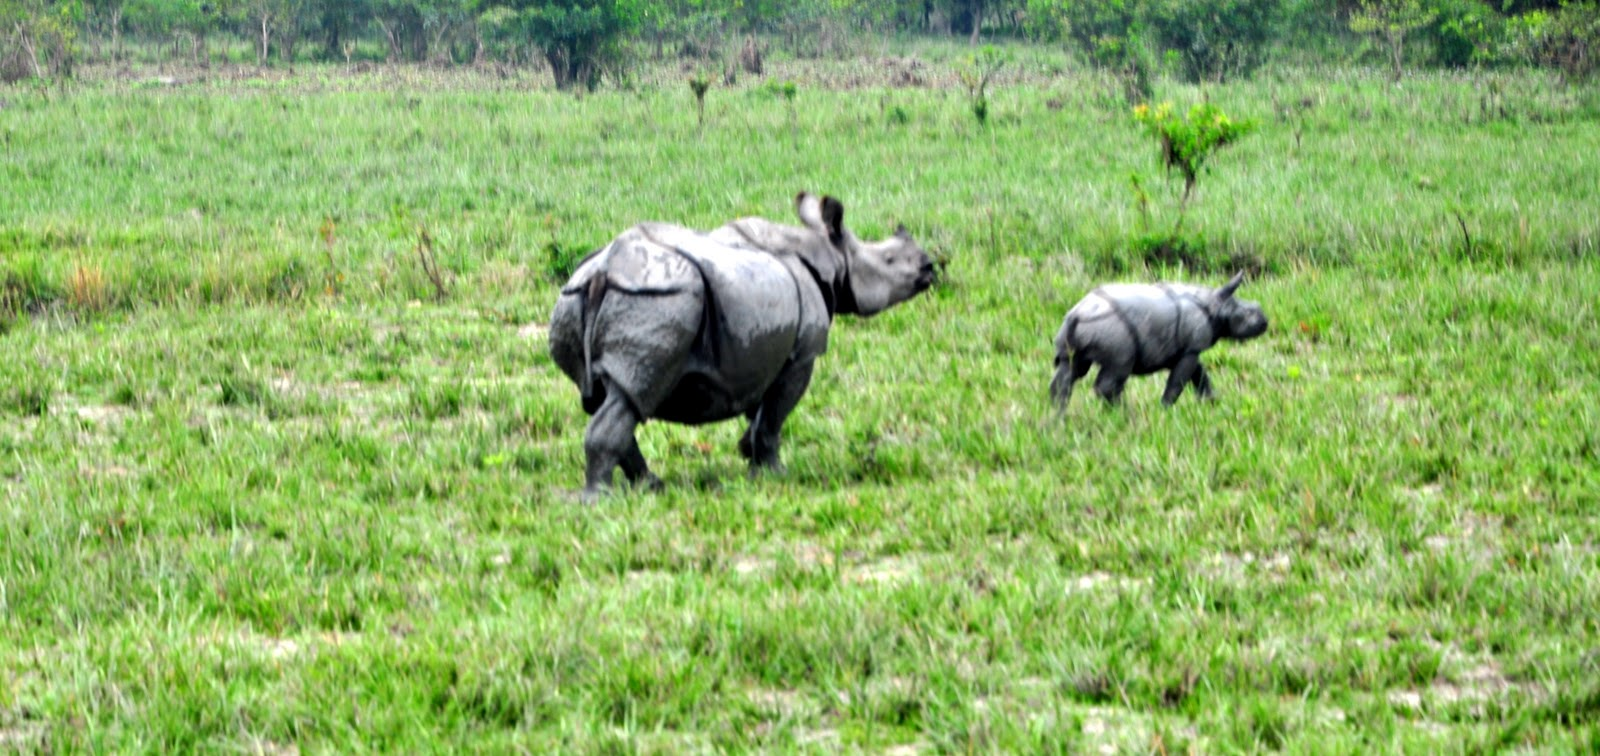 Pobitora Wildlife Sanctuary Guwahati, United 21 Grassland Resort, Kaziranga - Official Blog: Attraction ...